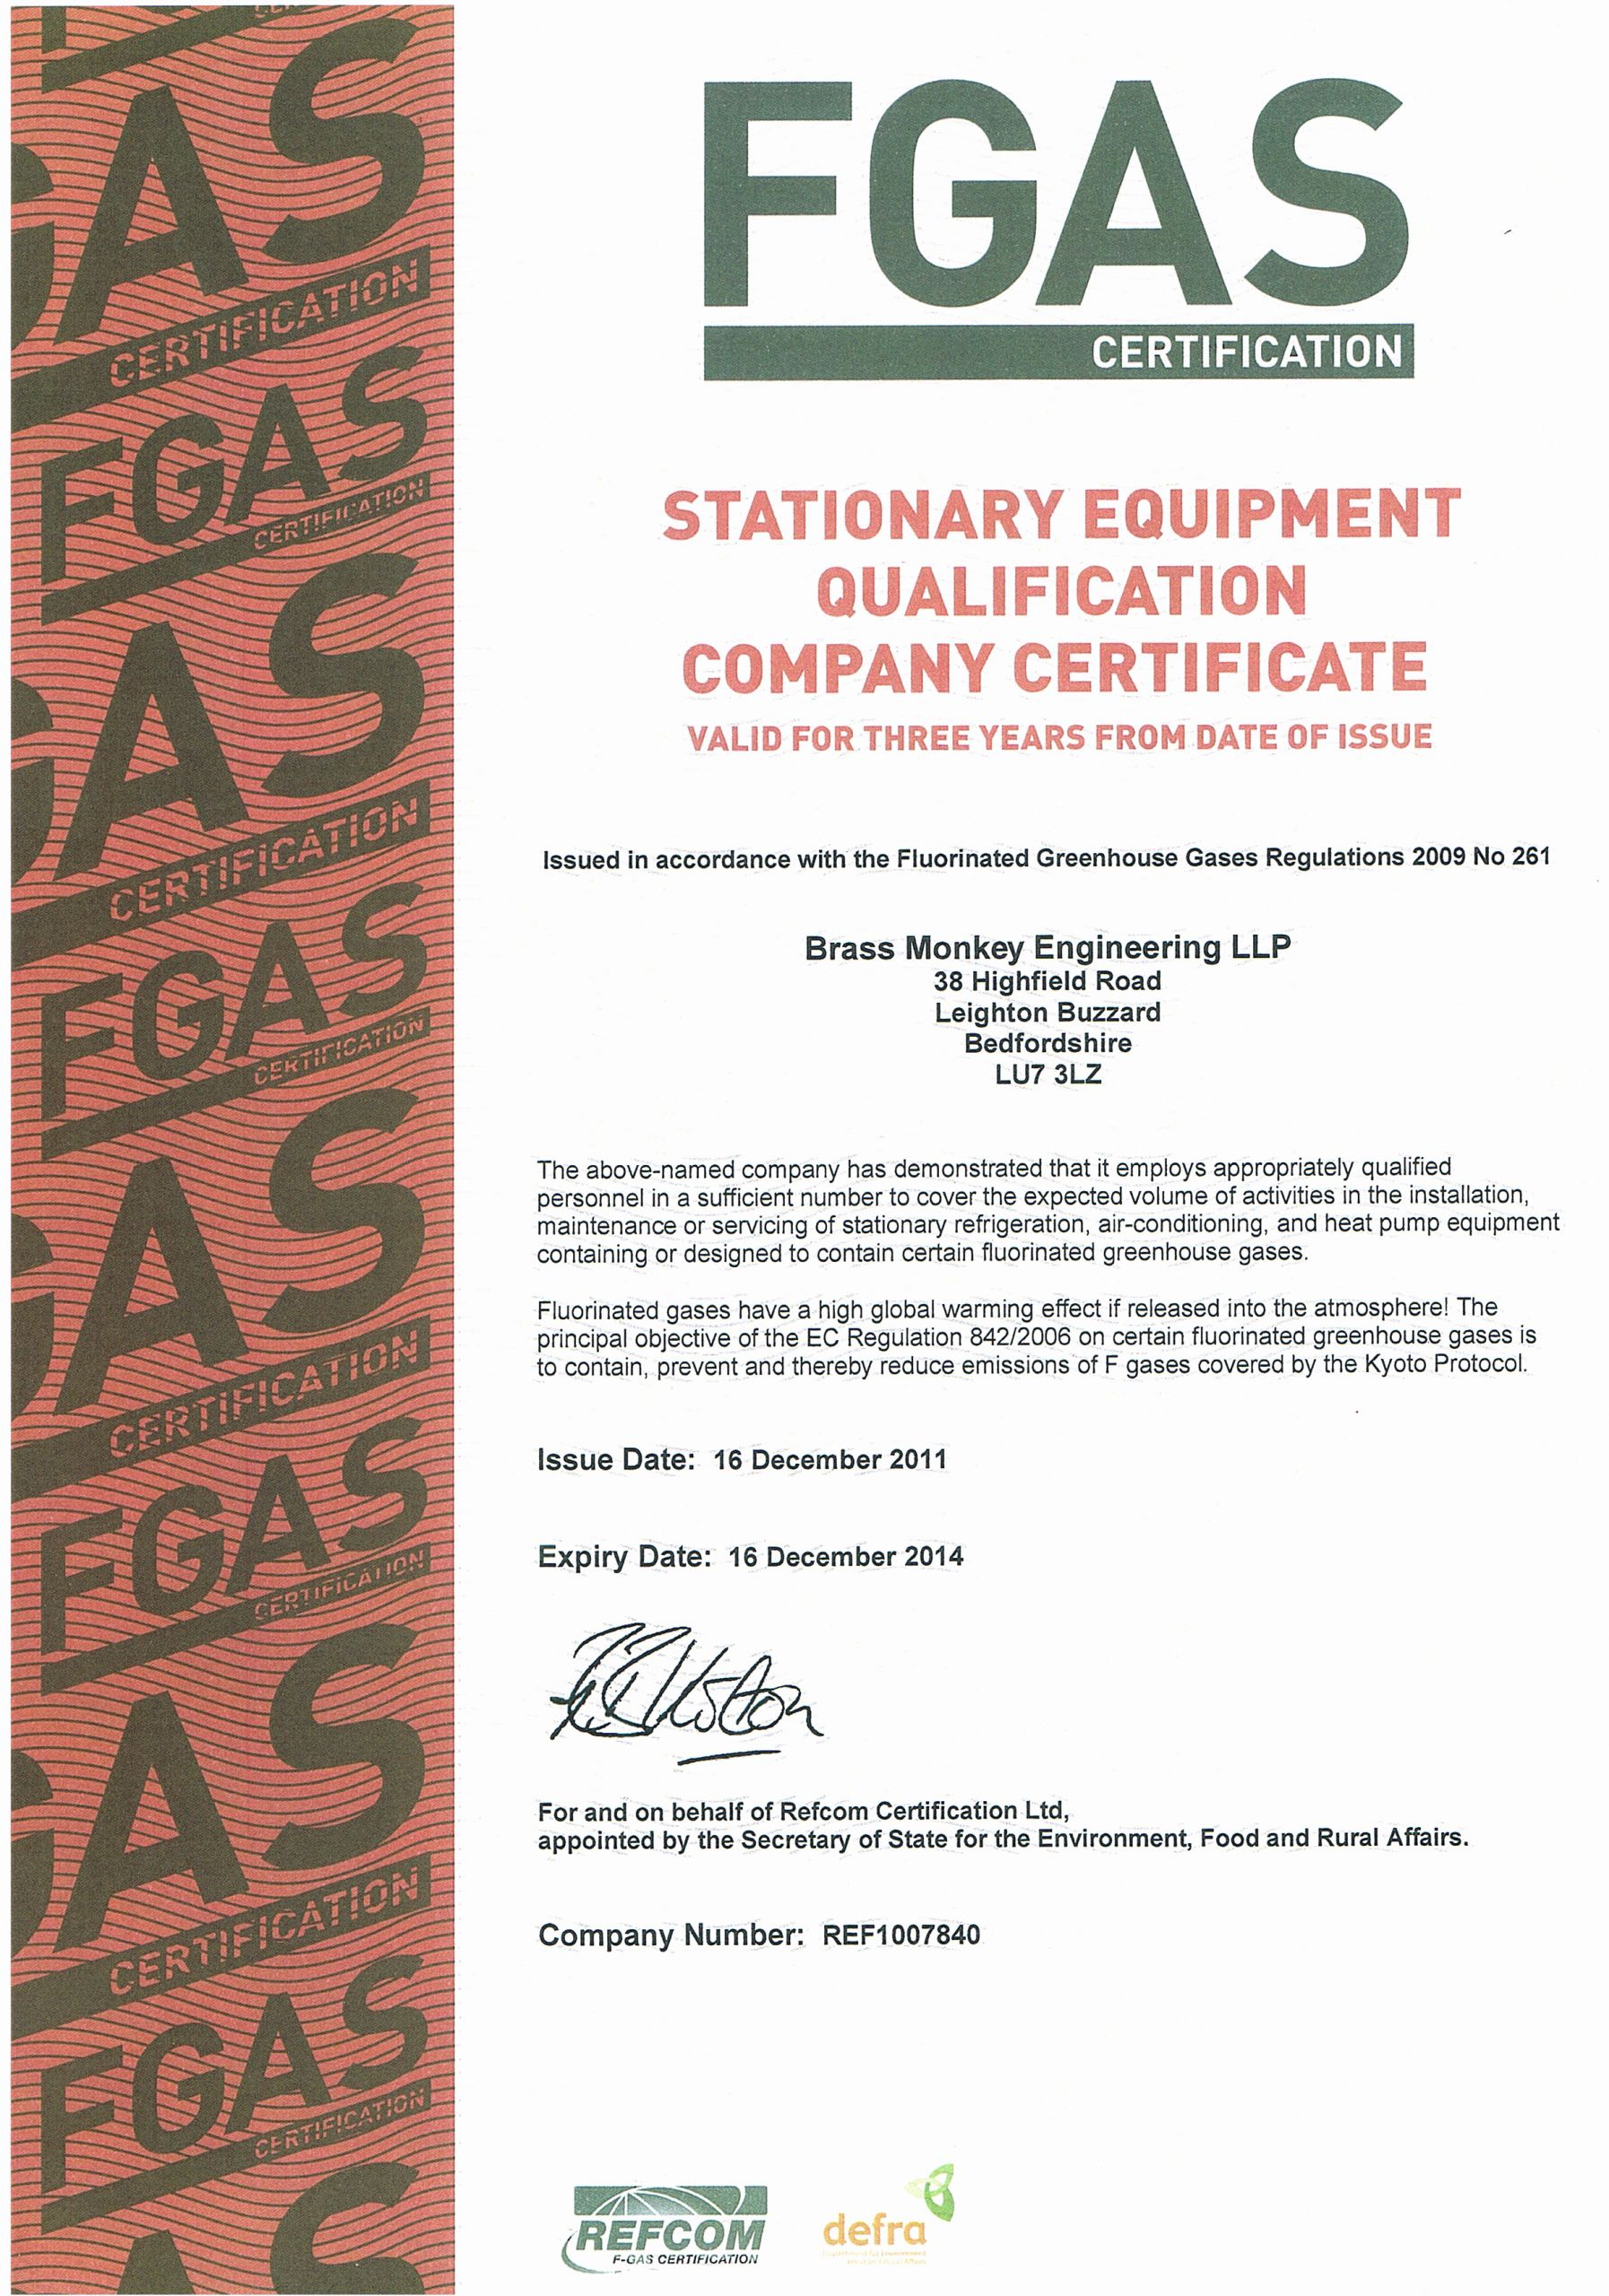 End User Certificate Template New Brass Monkey Engineering Llp Refrigeration & Air Conditioning